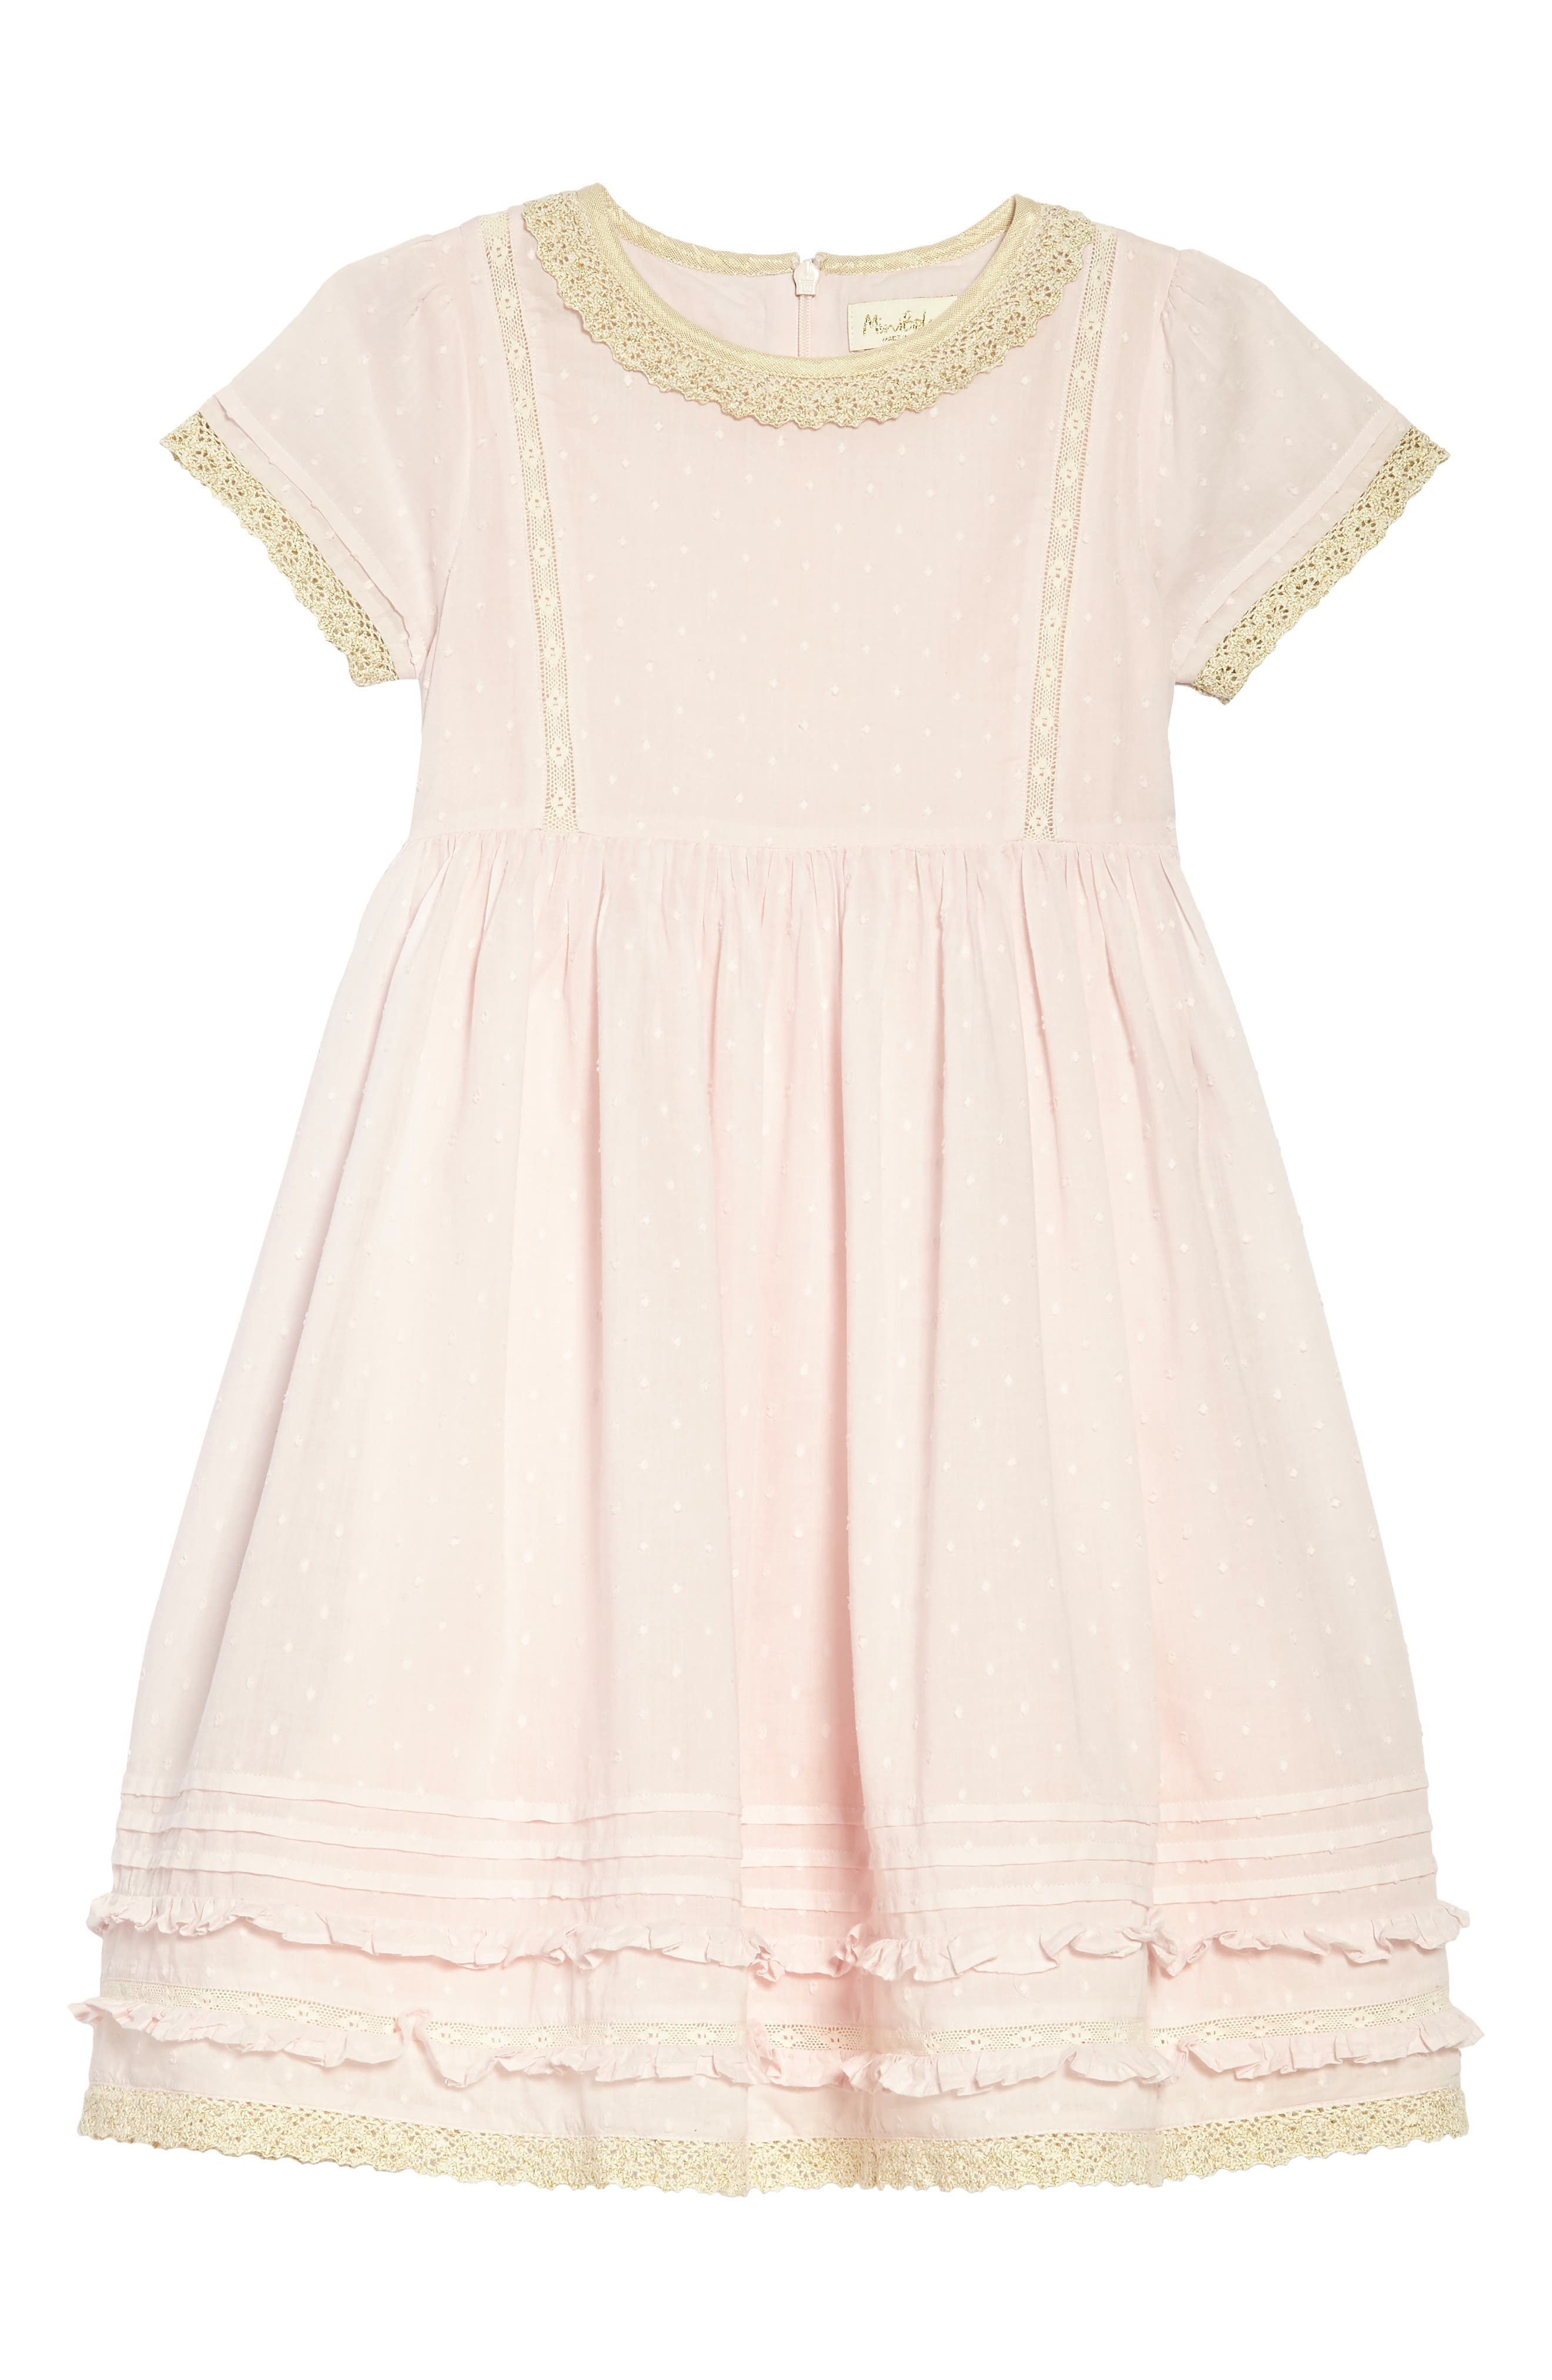 Lace Trim Fit & Flare Dress,                             Main thumbnail 1, color,                             Pnkpink Mist